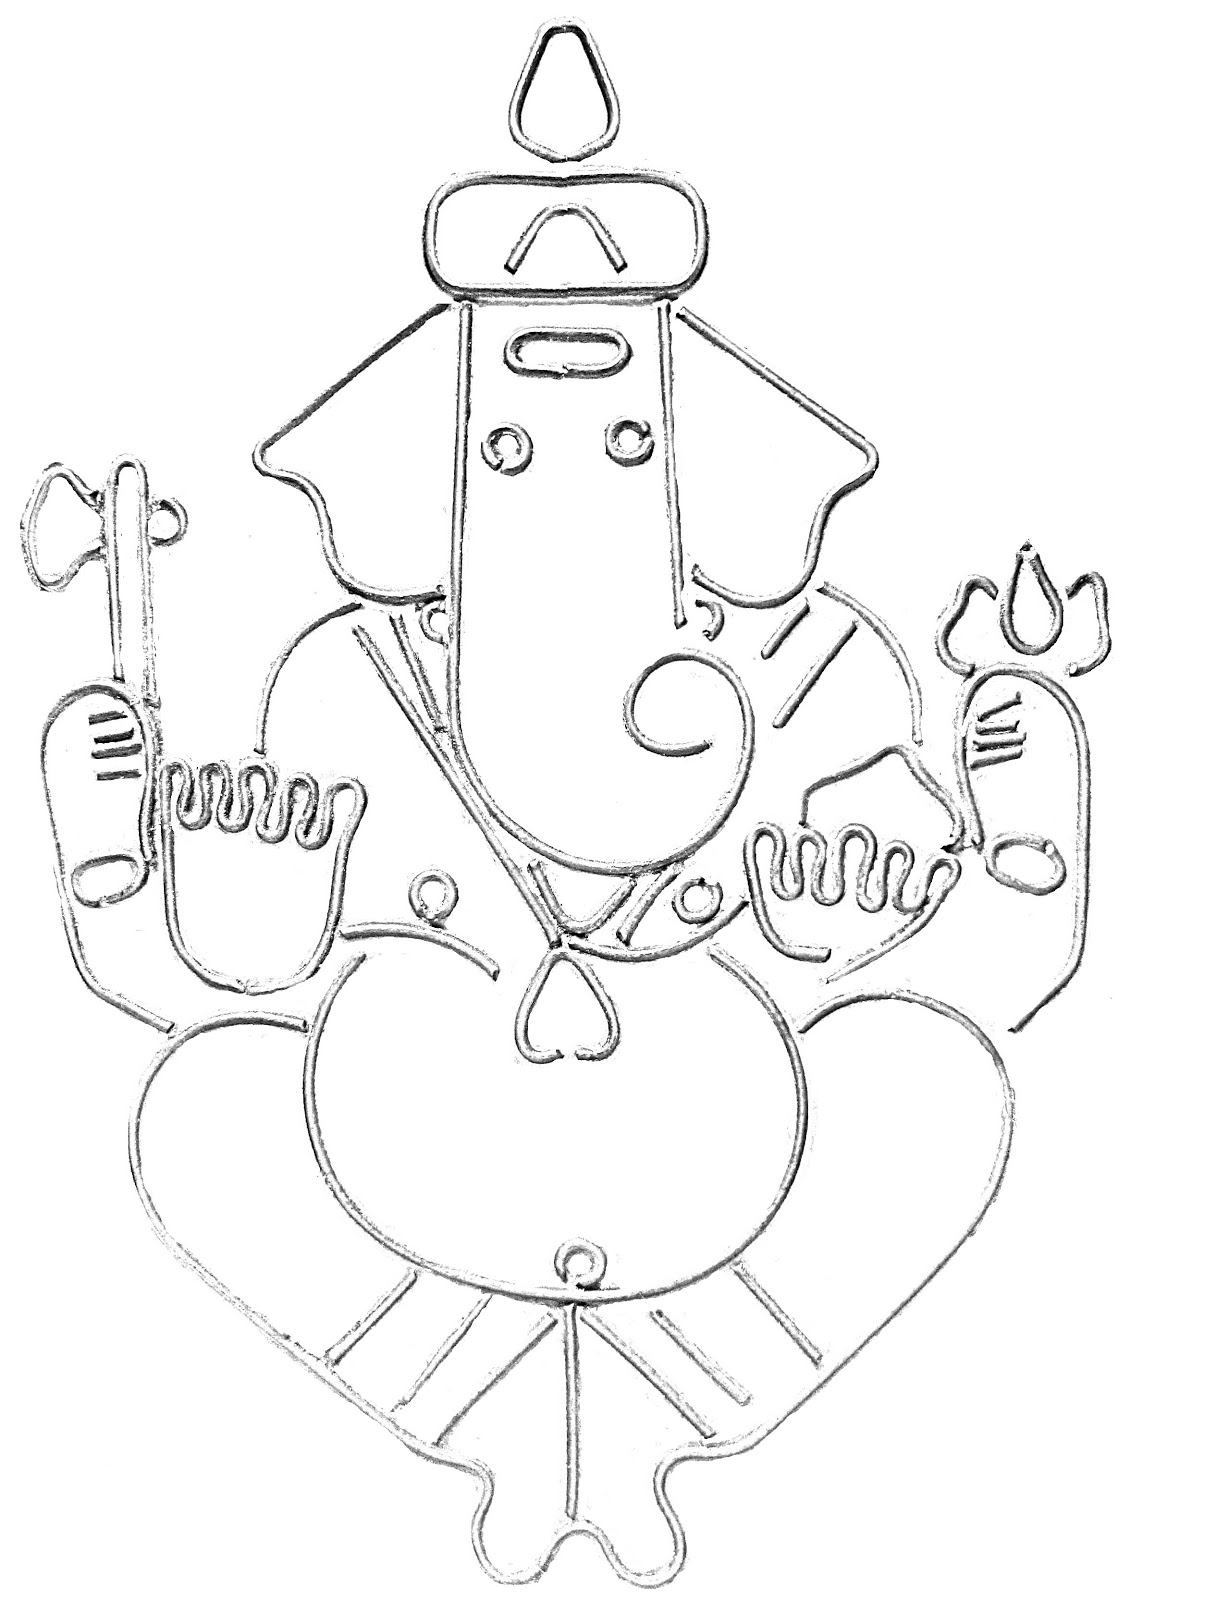 Stock pictures ganpati or ganesh sketches